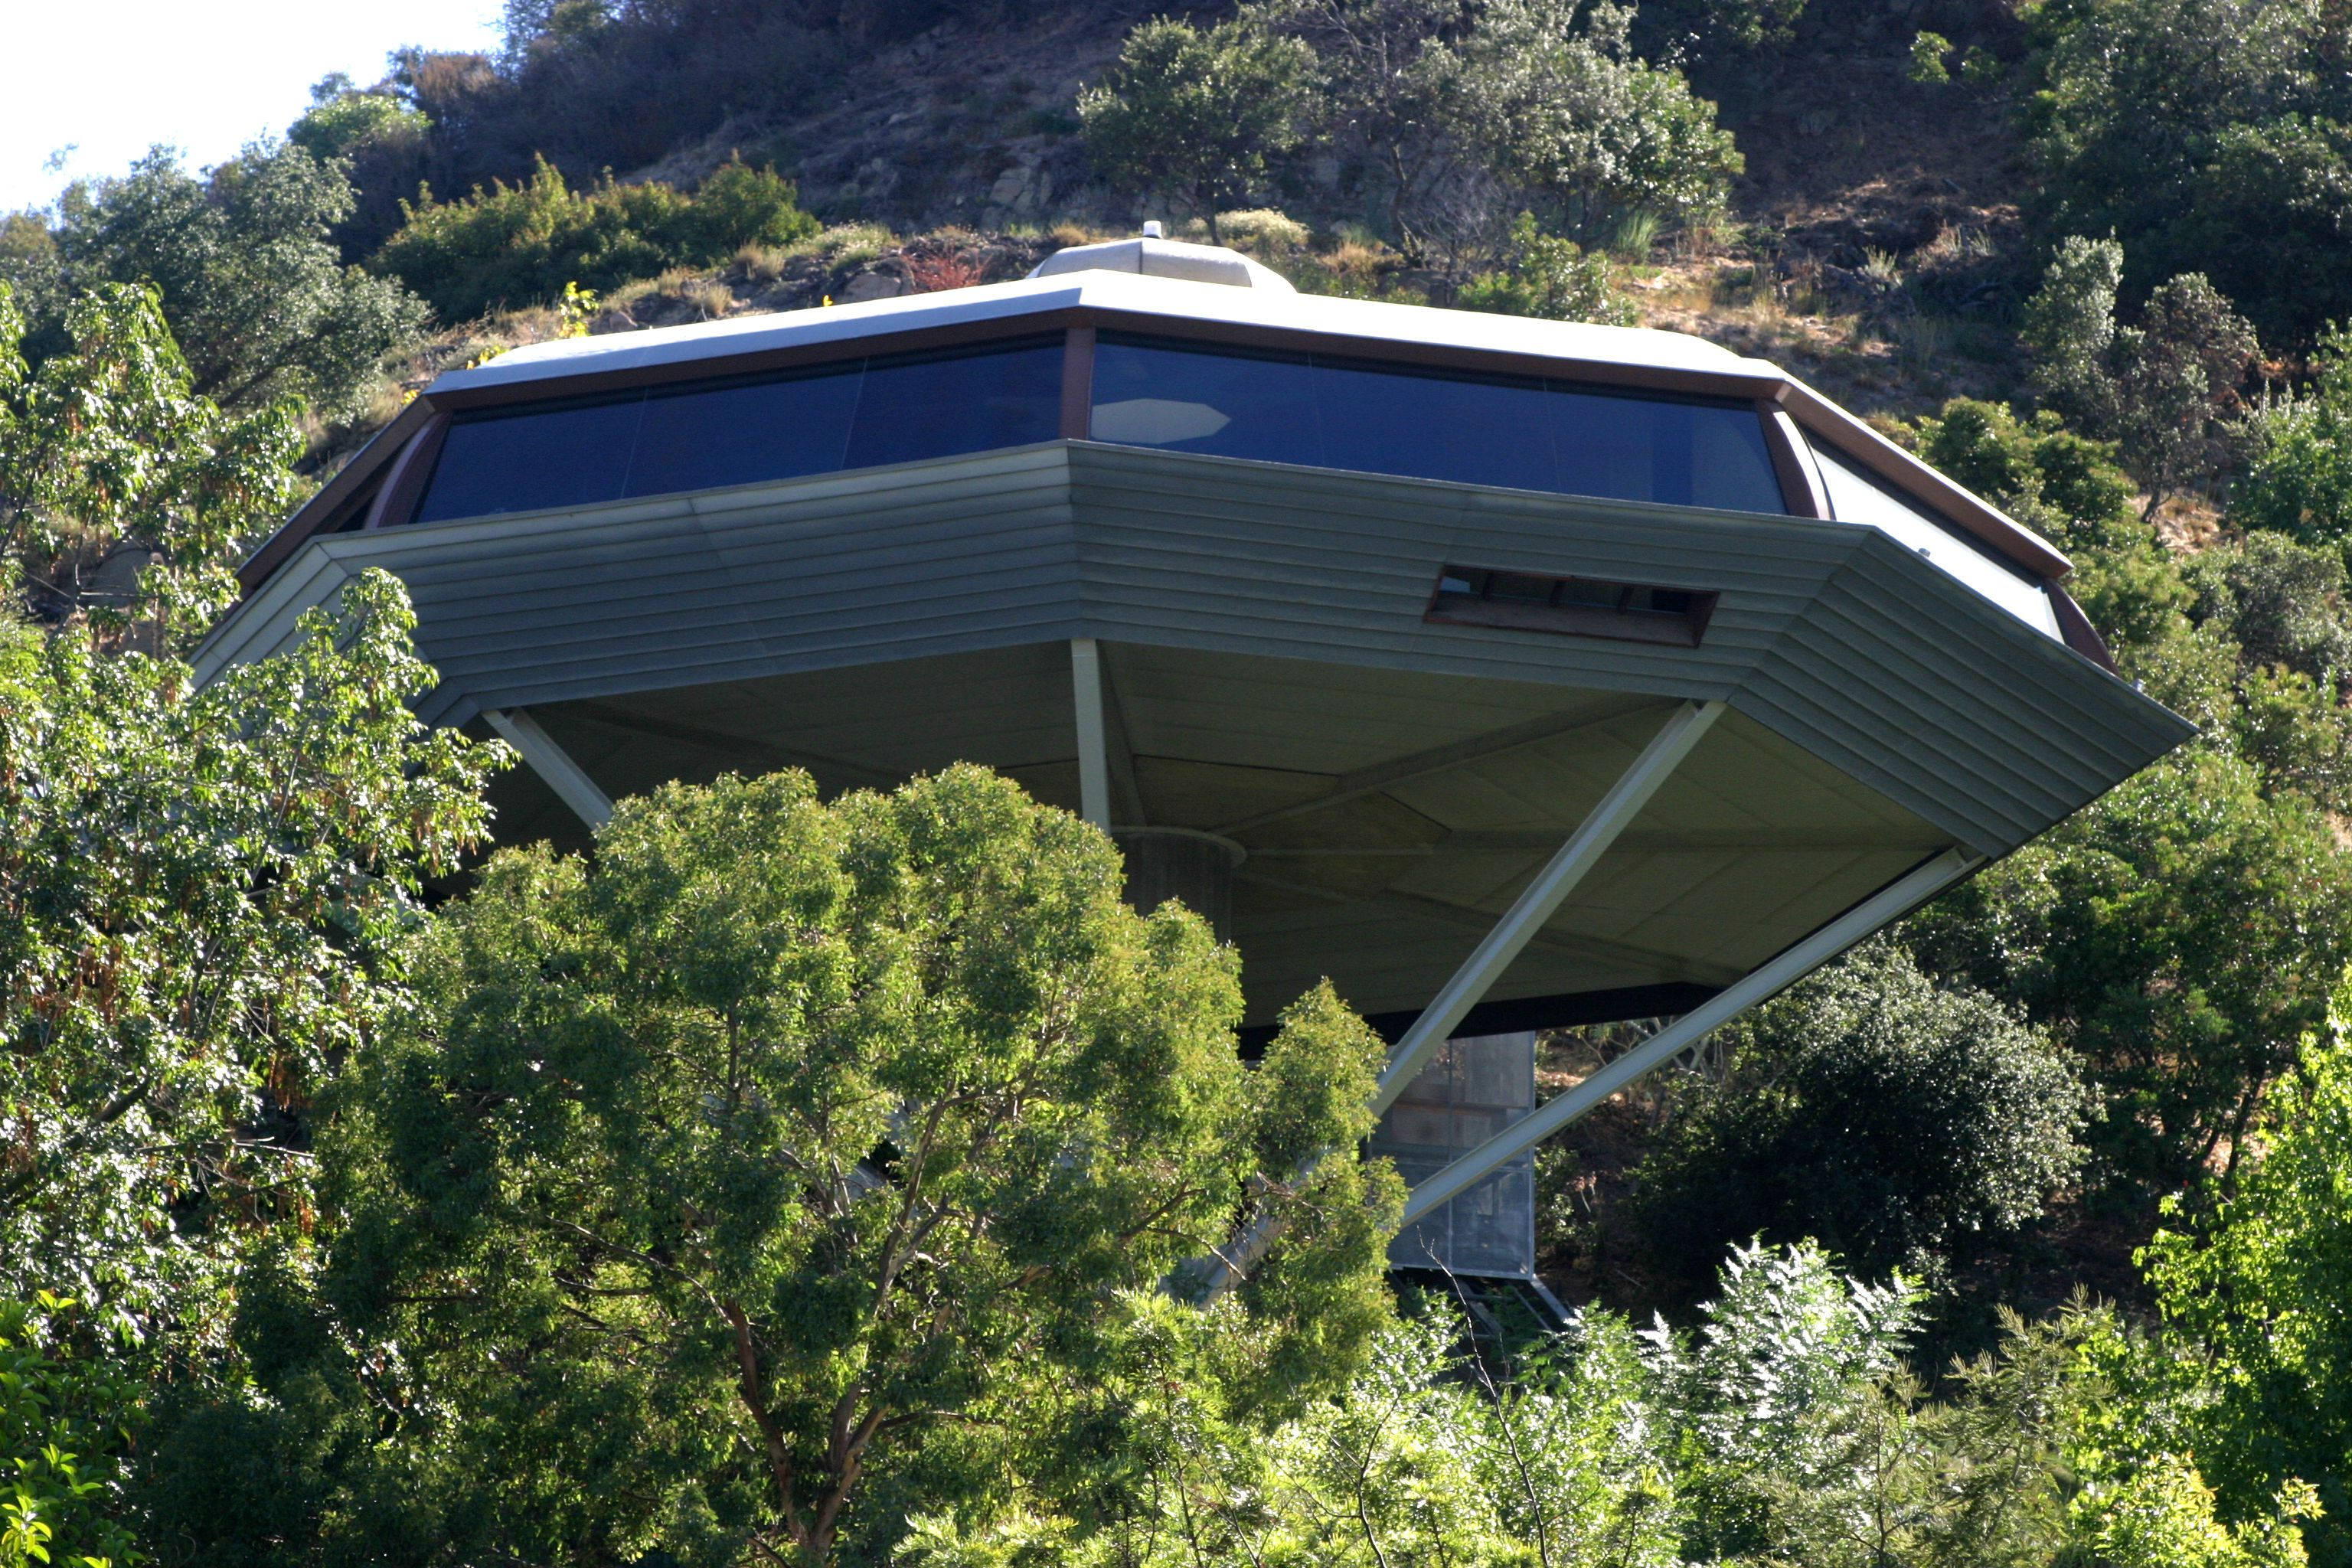 An octagon house that looks like a space ship perched in trees